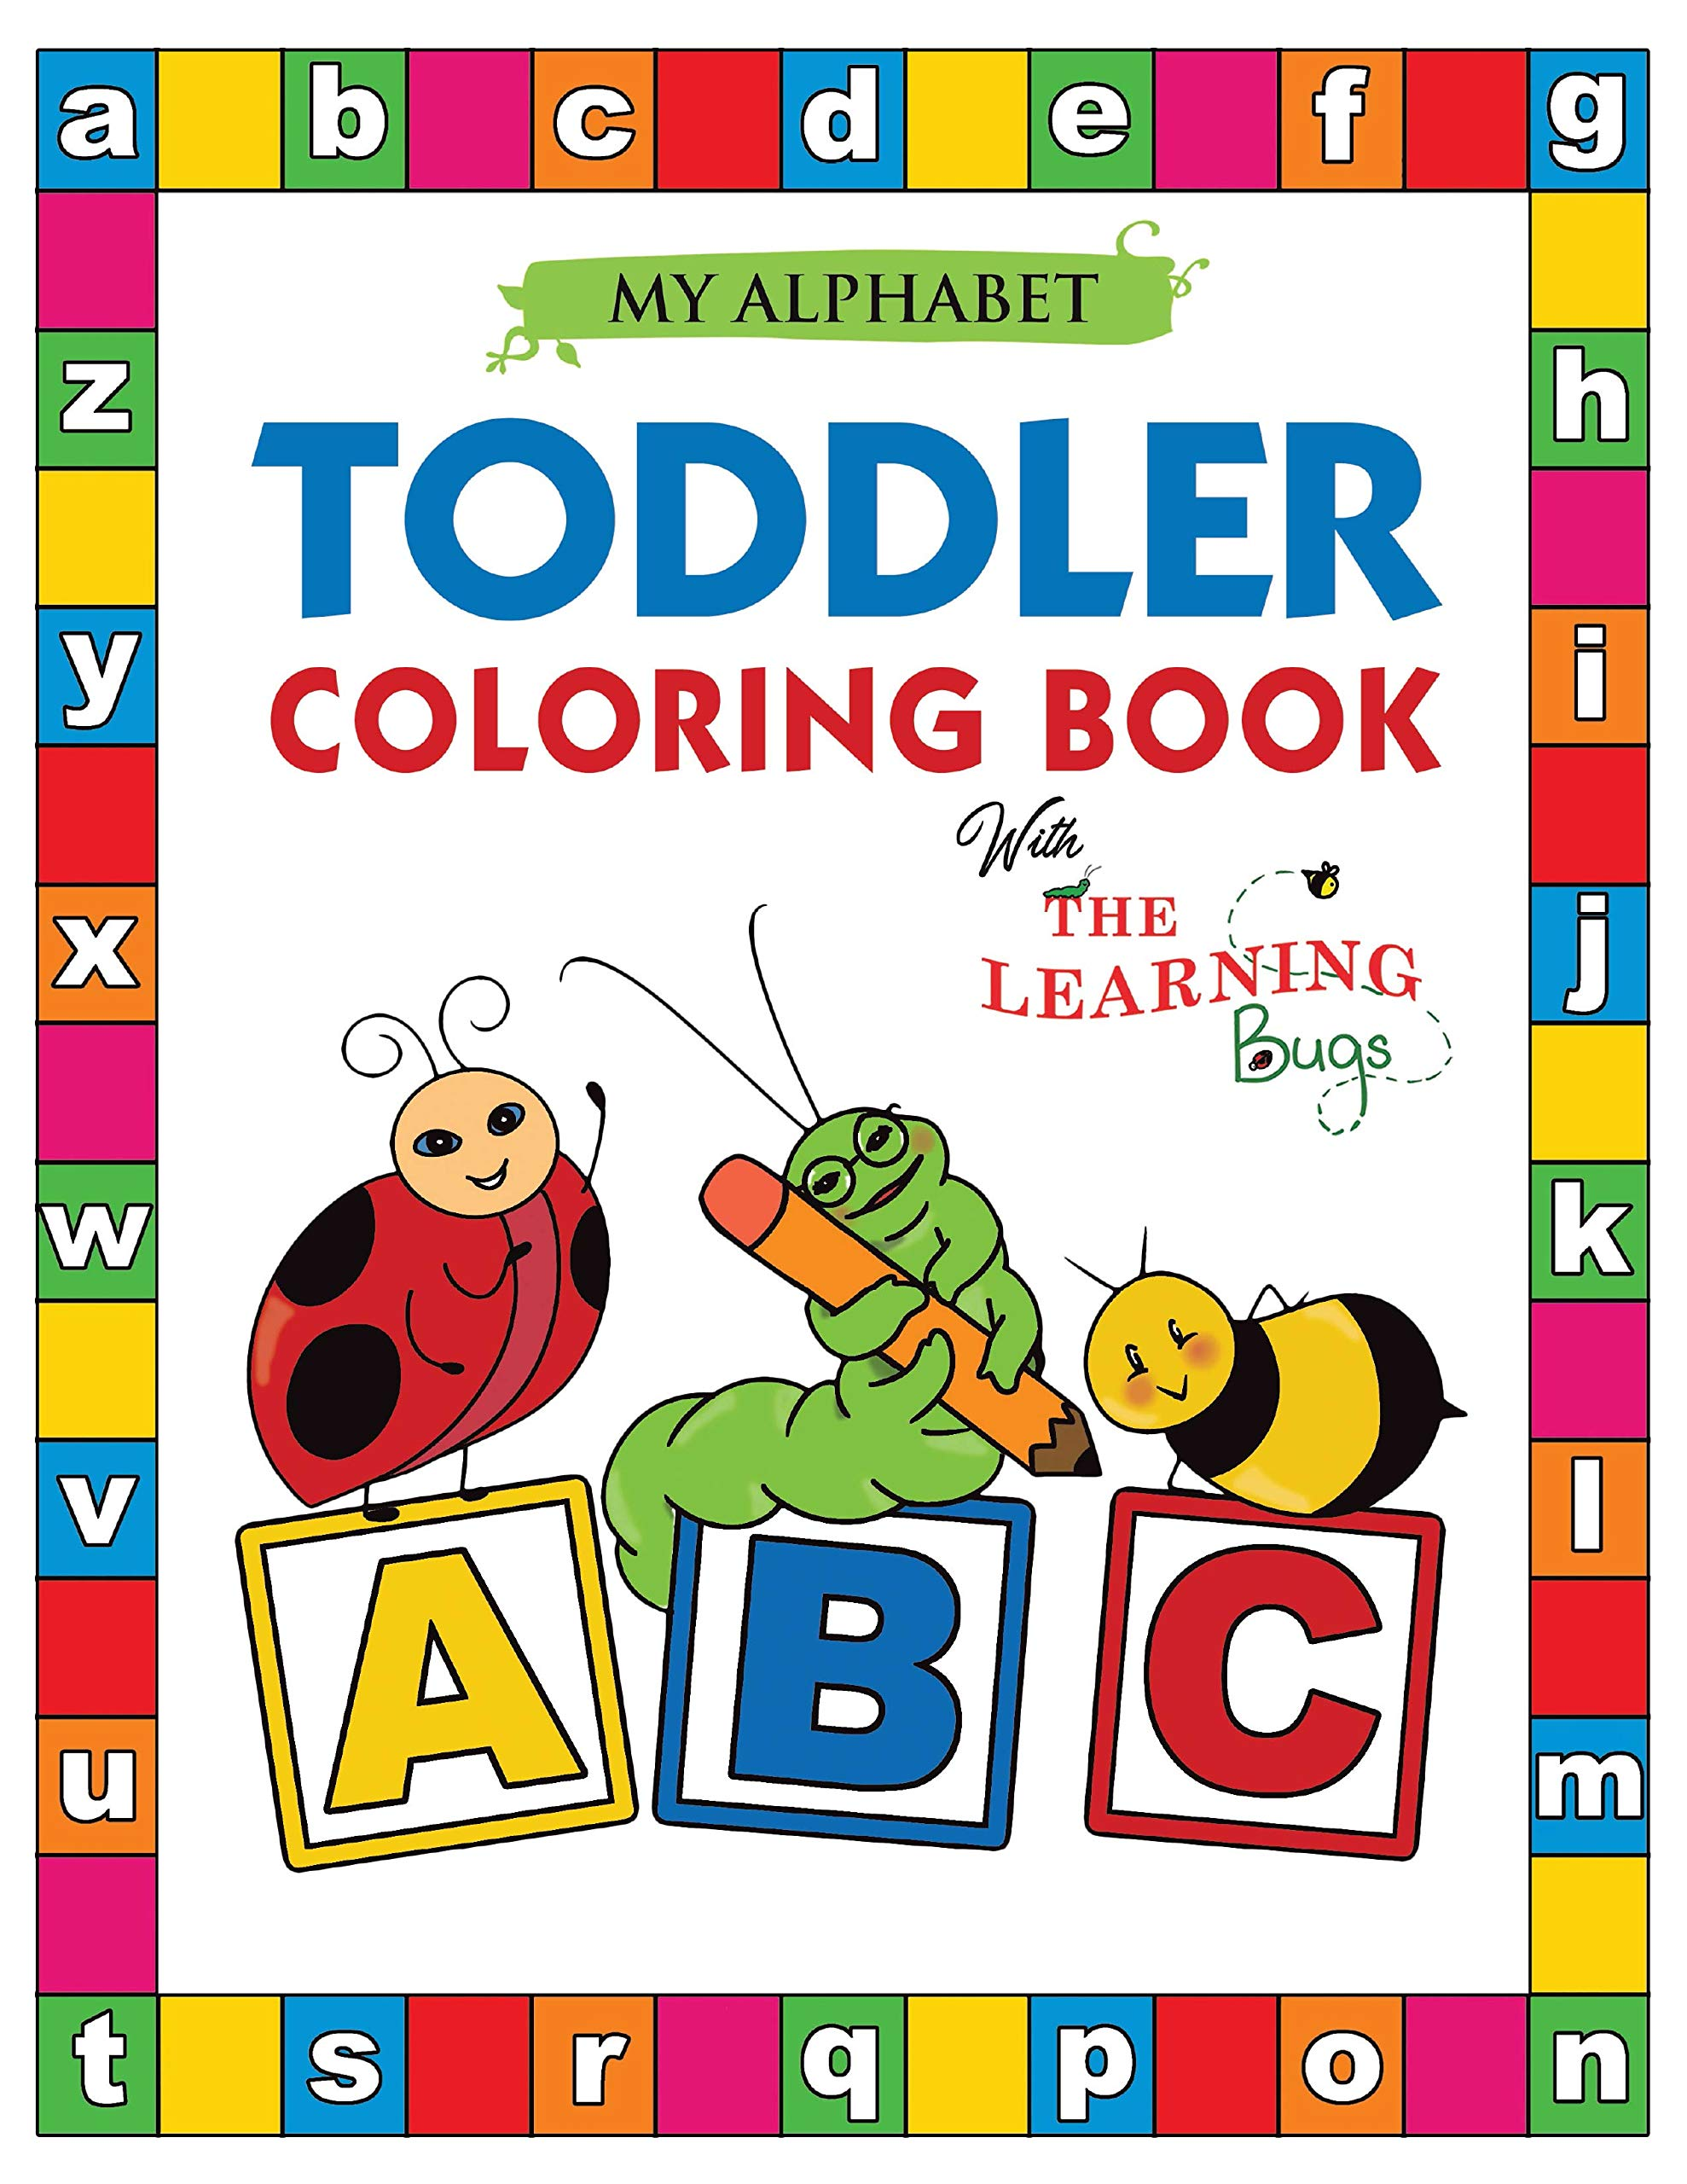 Alphabet Toddler Coloring Book Learning product image